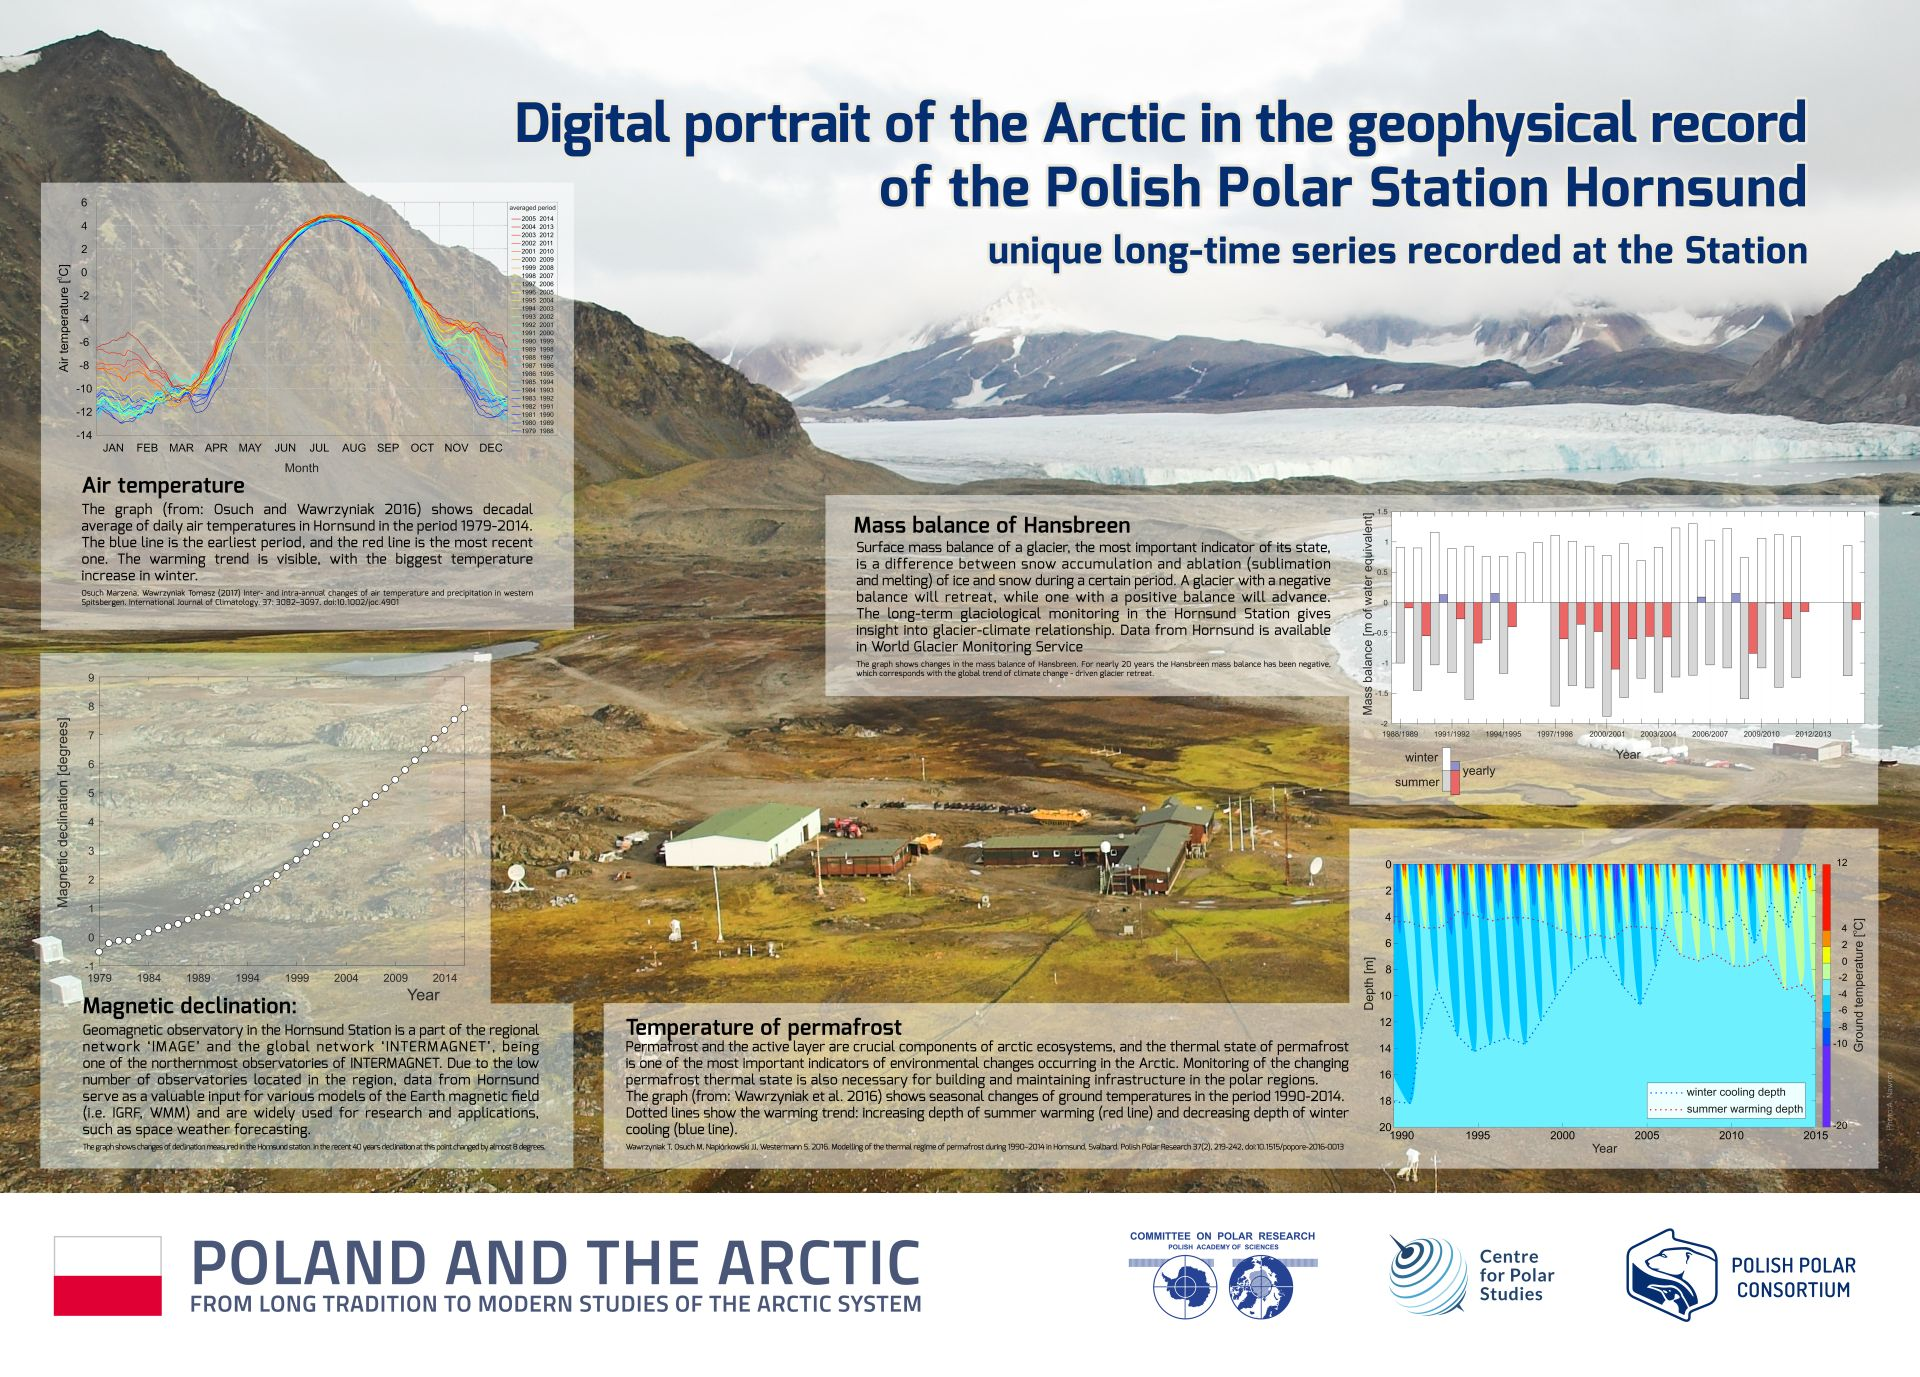 FROM LONG TRADITION TO MODERN STUDIES OF THE ARCTIC SYSTEM